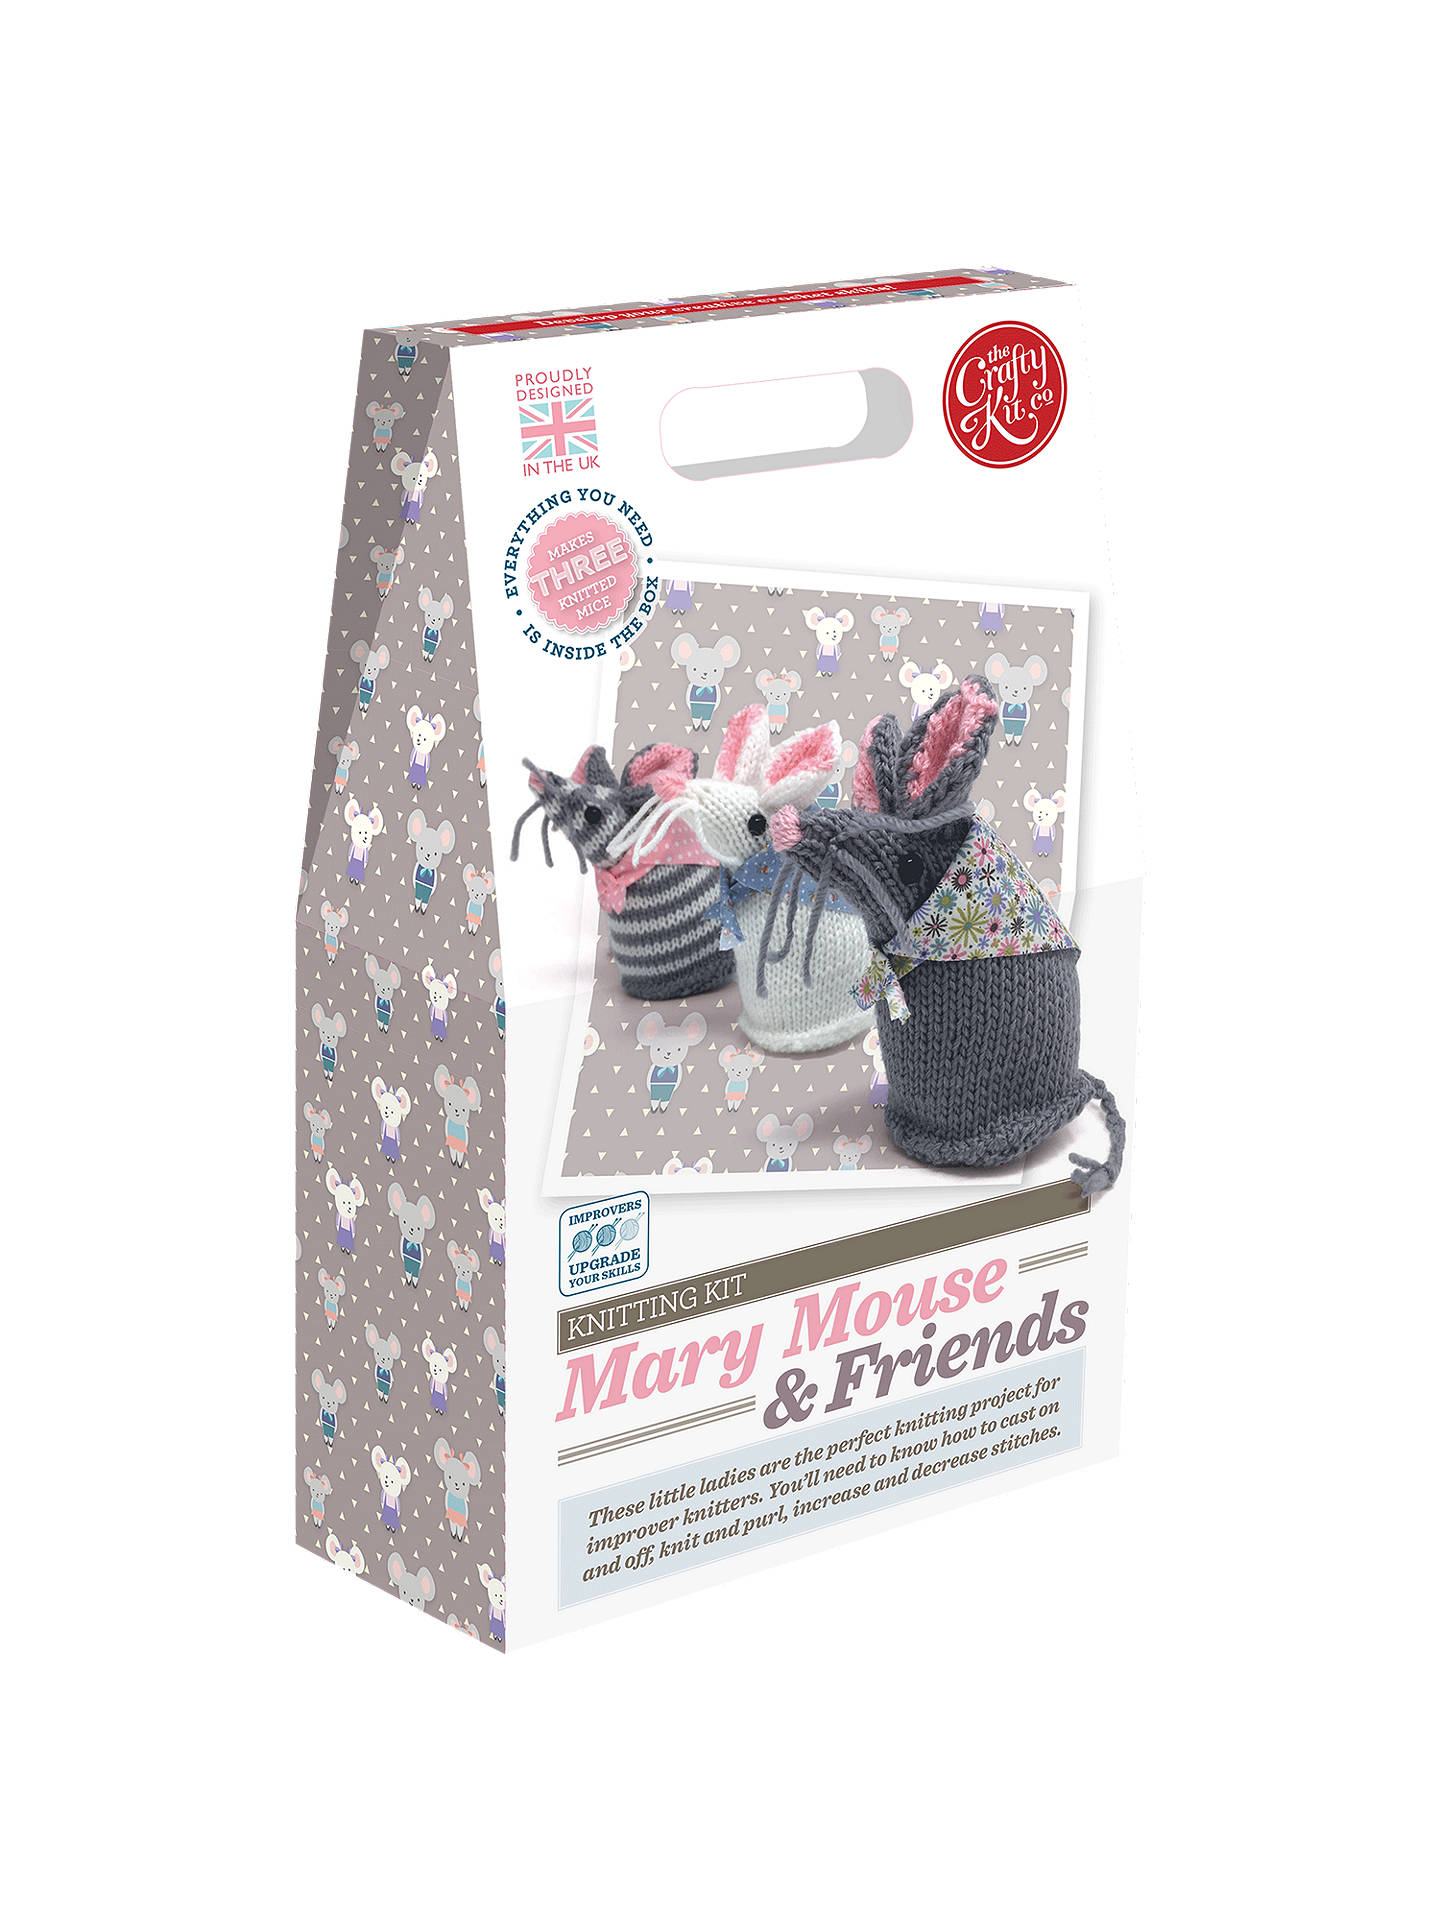 Buy The Crafty Kit Company Knit Your Own Mary Mouse And Friends Kit Online at johnlewis.com